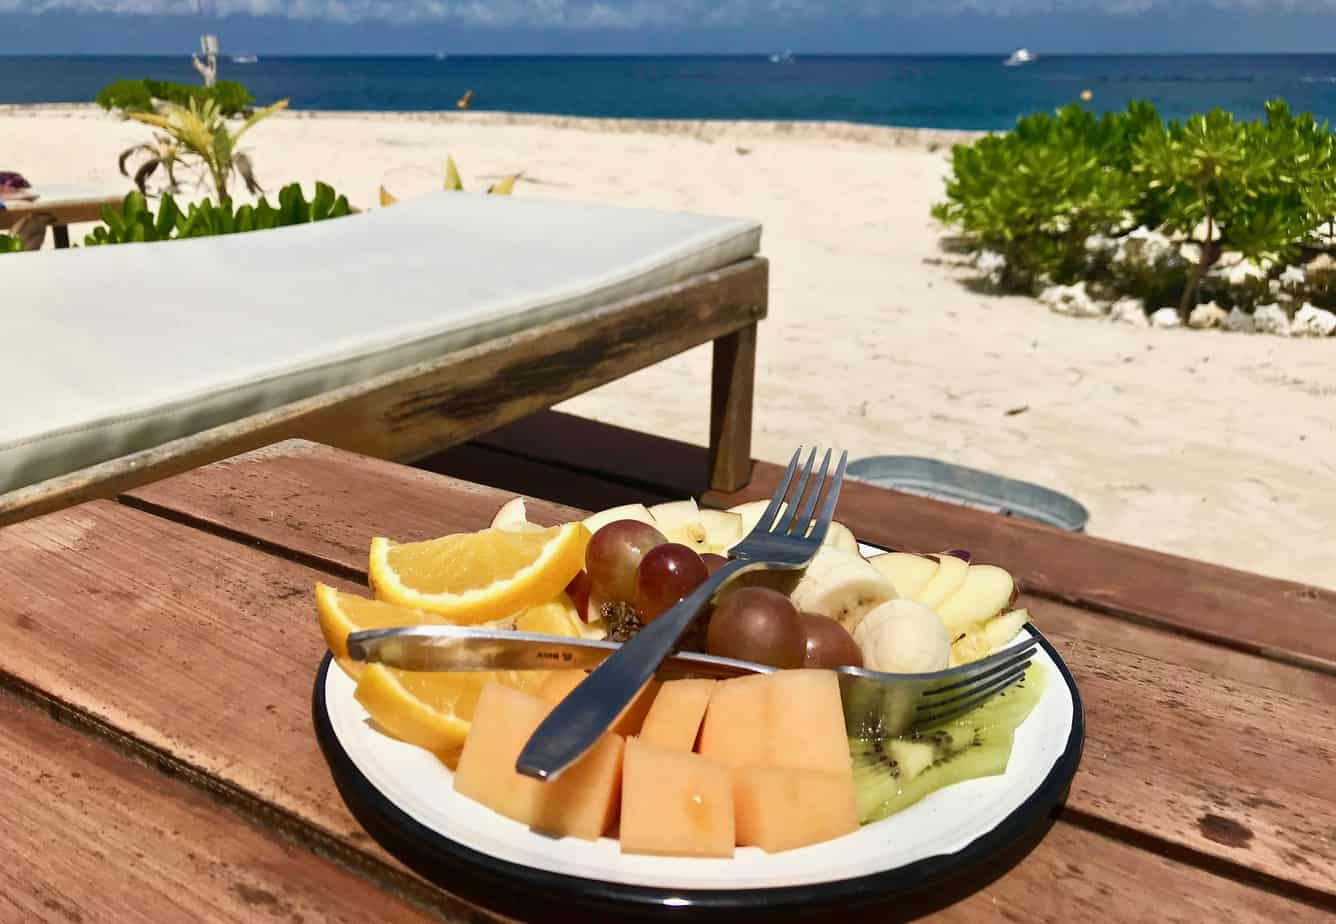 Luxury travel includes this succulent cold fresh tropical fruits in your welcome fruit platter.